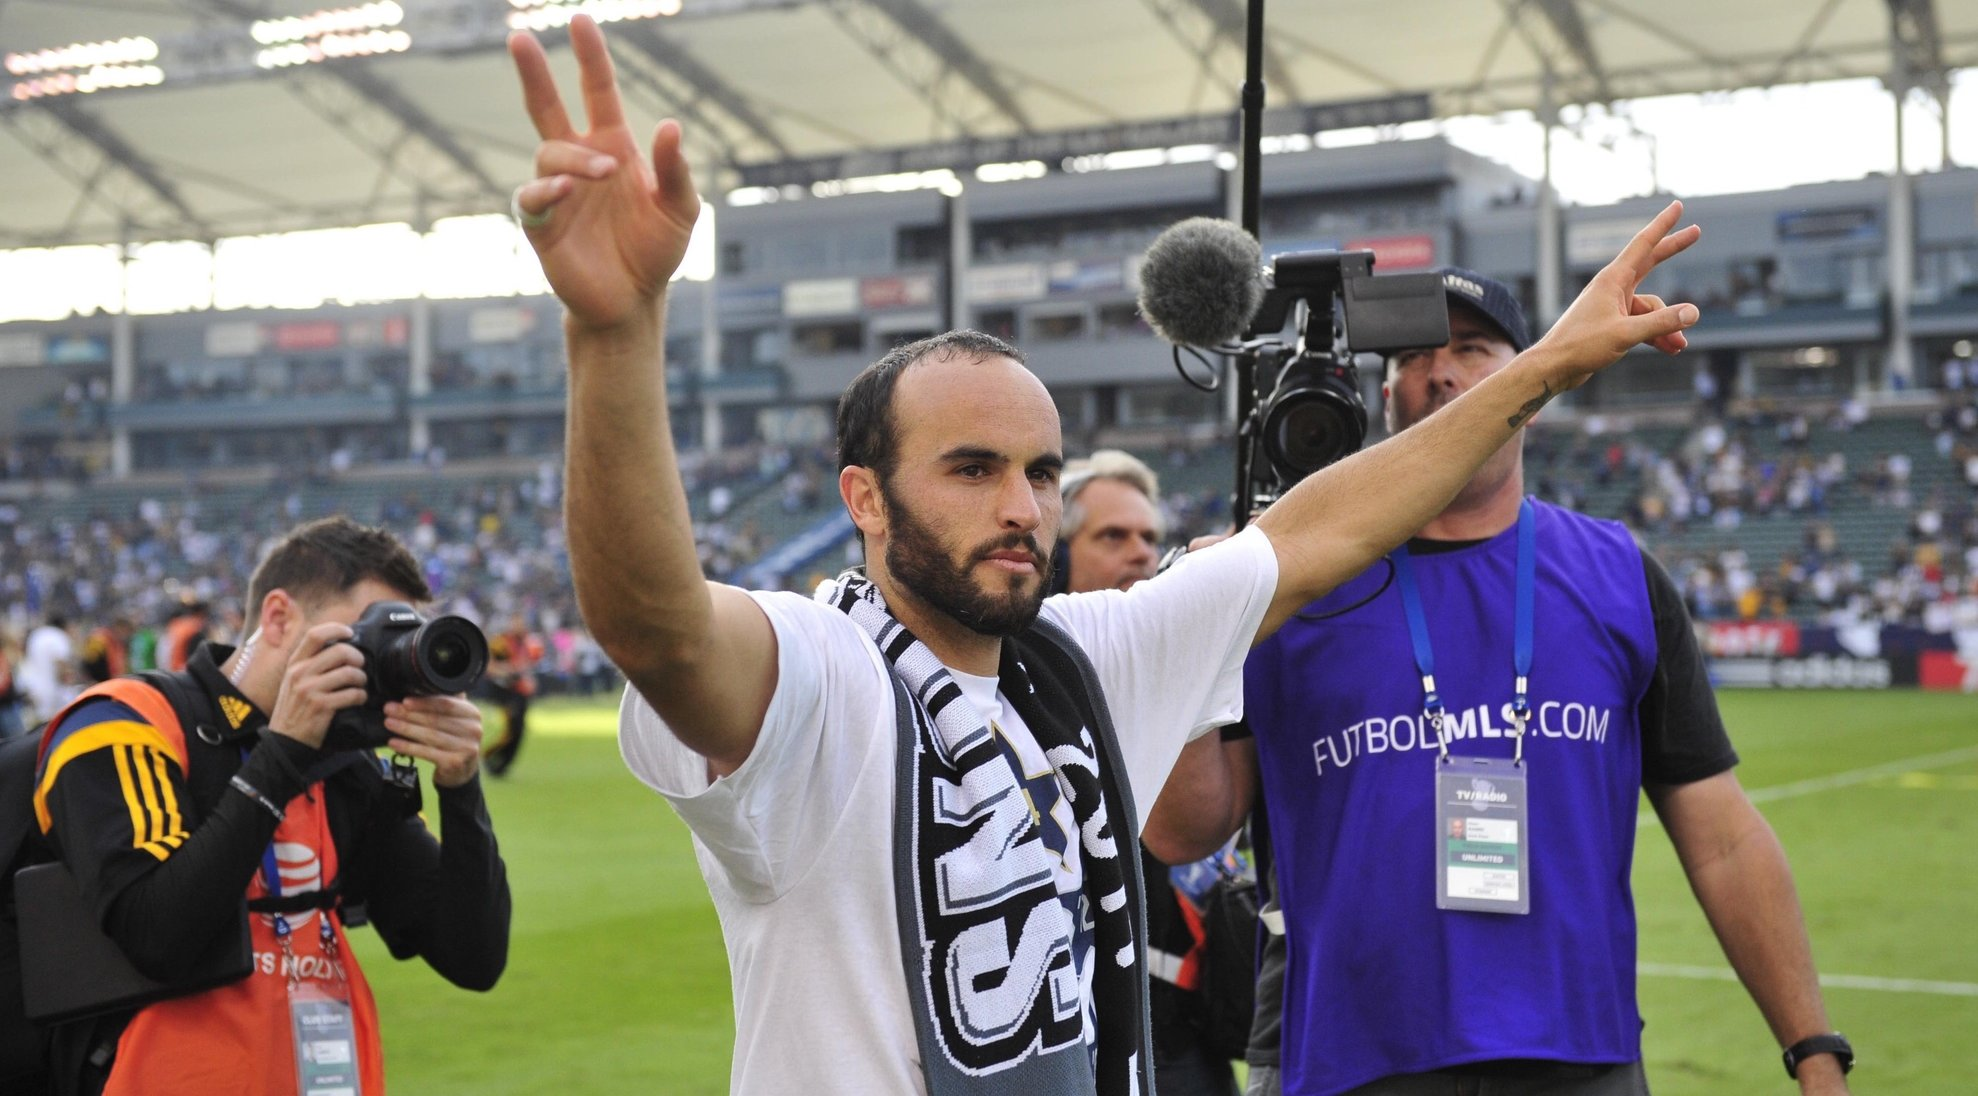 Donovan to be honored alongside Beckham with statue outside of Galaxy stadium